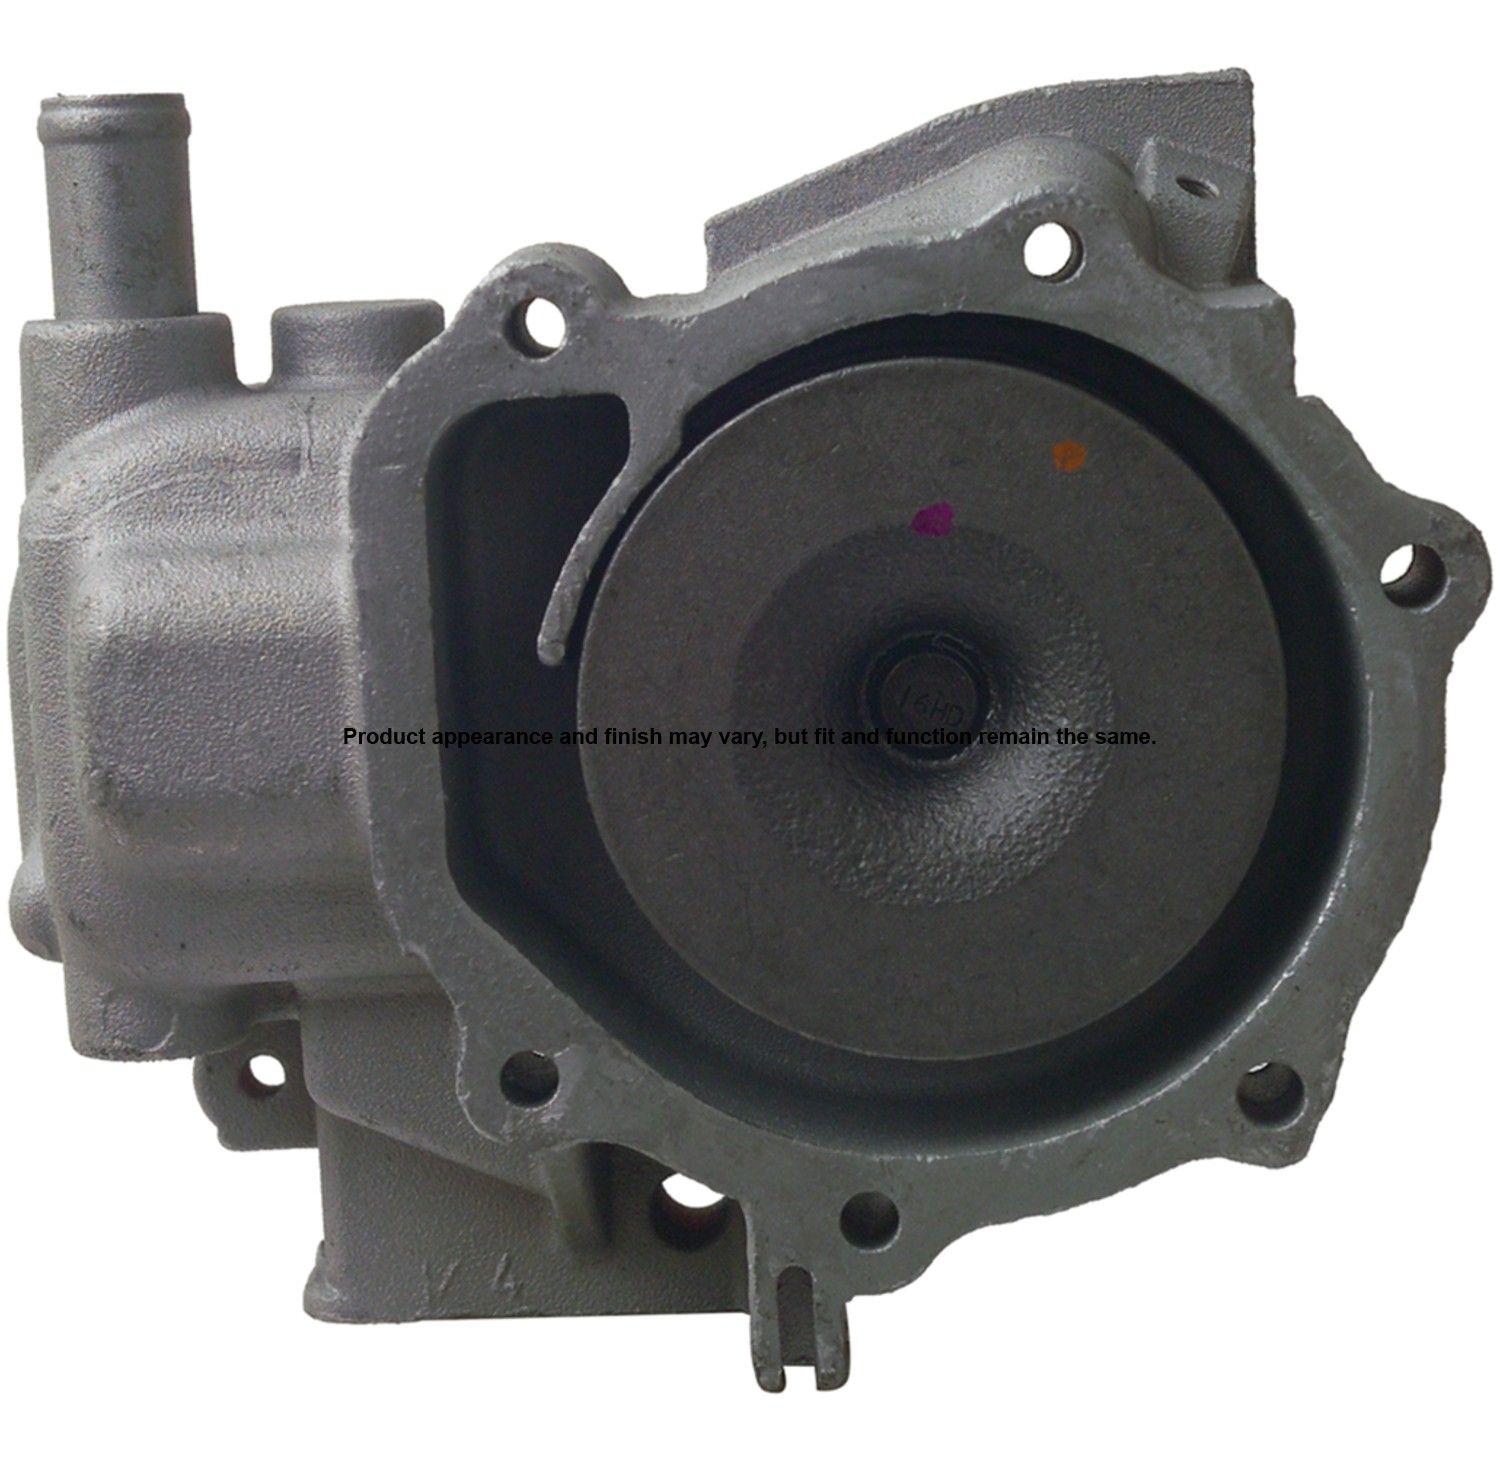 Subaru Outback Engine Water Pump Replacement Aisin Airtex 2012 Diagram 4 Cyl 25l Cardone 57 1663